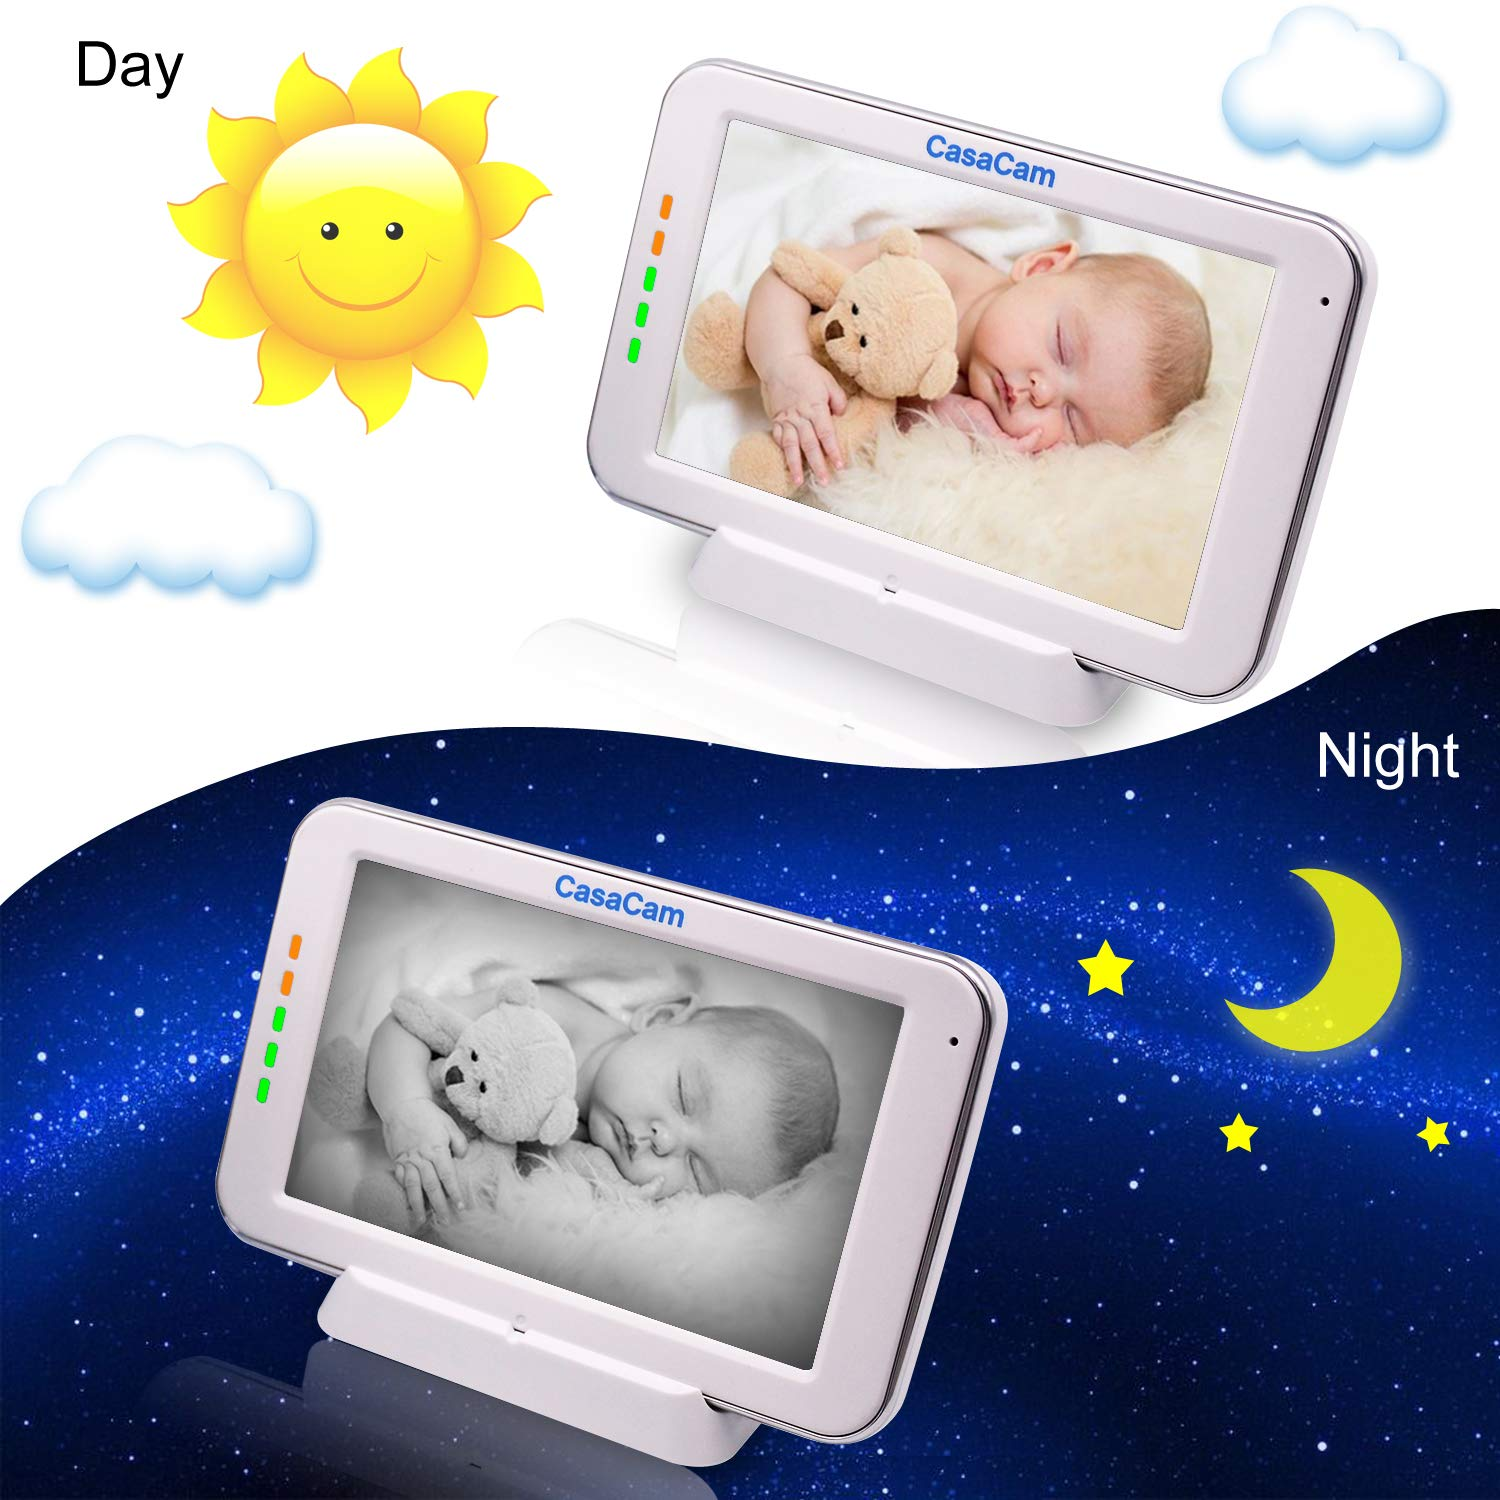 CasaCam BM200 Video Baby Monitor with 5'' Touchscreen and HD Pan & Tilt Camera, Two Way Audio, Lullabies, Nightlight, Automatic Night Vision and Temperature Monitoring Capability (1-cam kit) by CasaCam (Image #4)